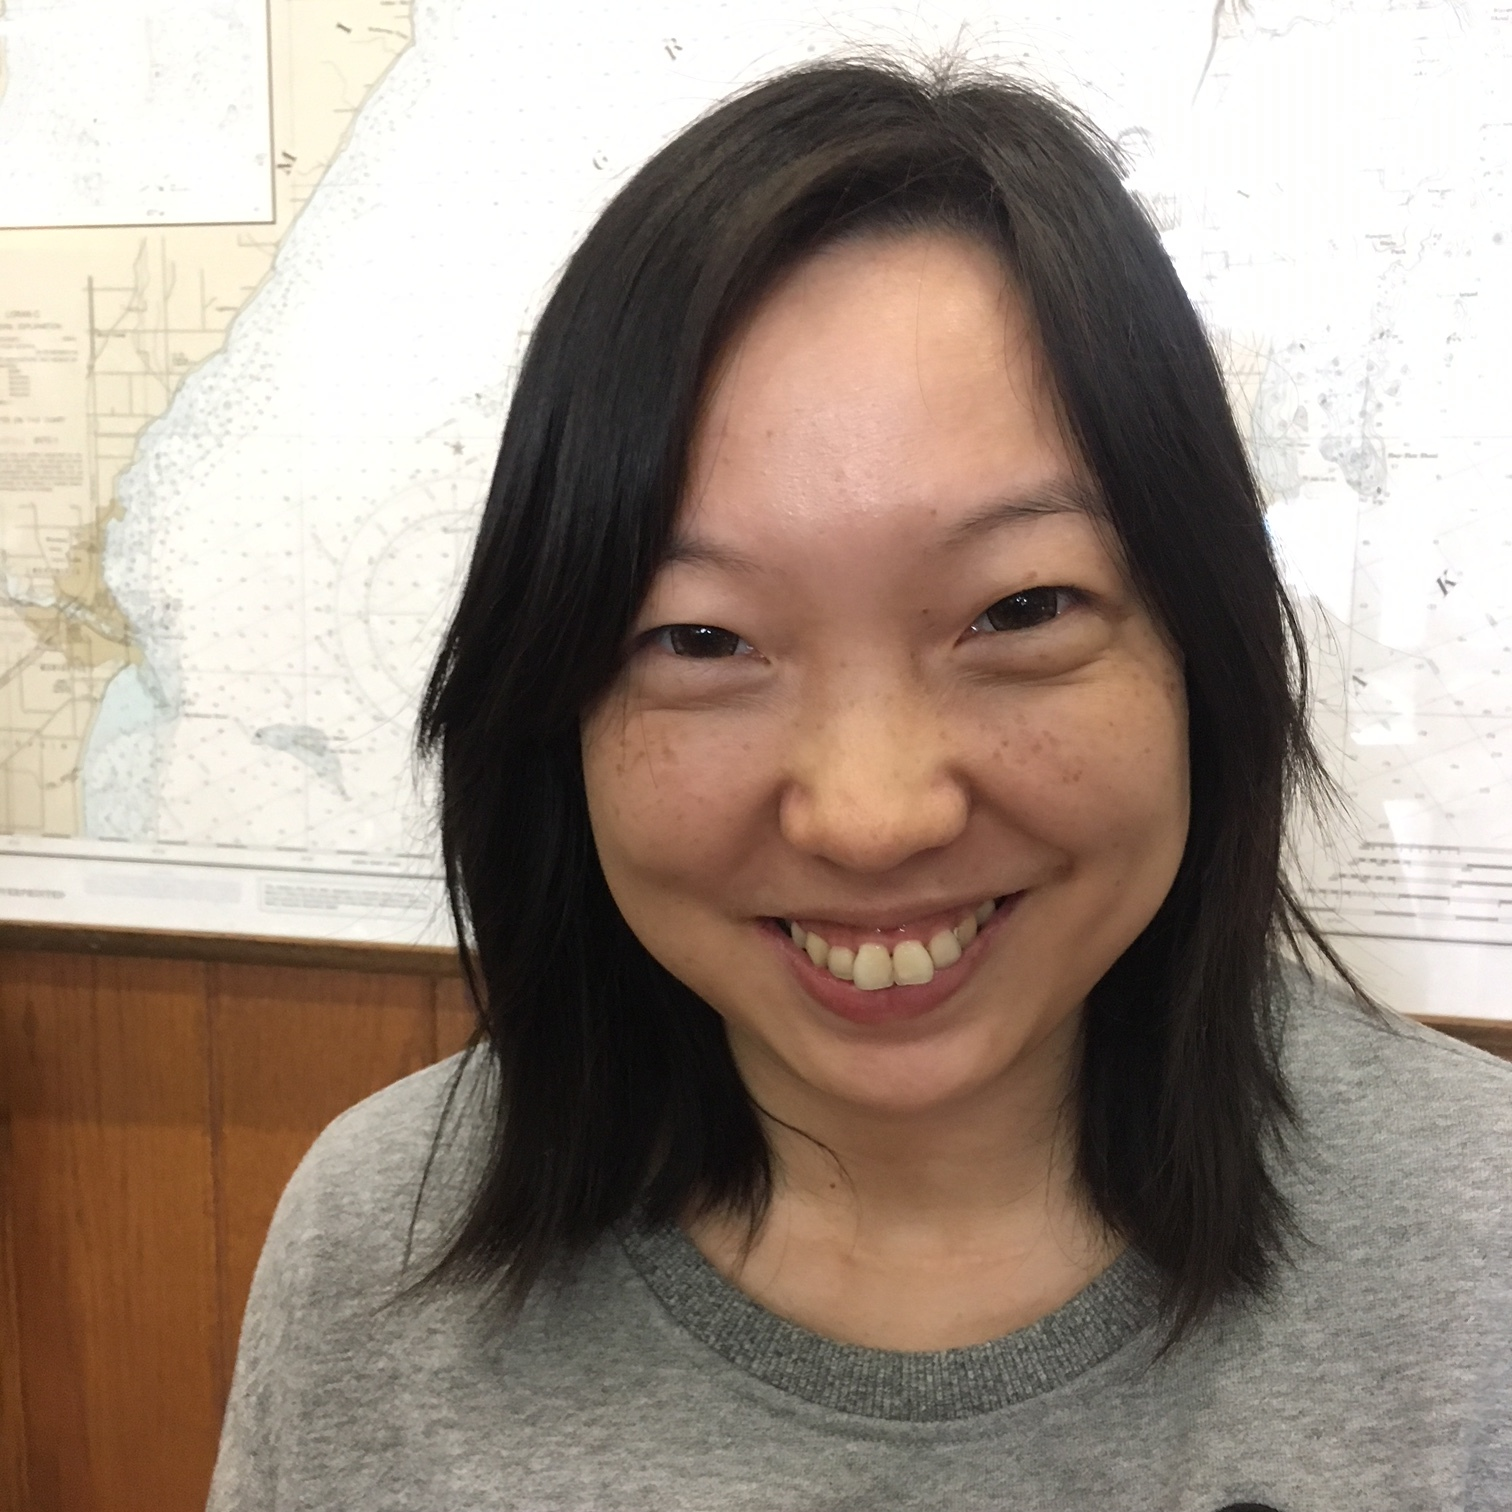 Dani Gillespie - I met my husband Michael in China in 2012. At that time, I had been teaching middle school Chinese for five years. The last time I spoke English had been almost ten years before that. We were married in China in 2014 and hadn't yet decided to move back to America. But I wanted to finally see my in-laws and meet Michael's family. We came to visit last fall and Washington Island brought us good luck right away. Michael teaches at the school and I have a new job working at the Rec Center. Our new life on the island is just beginning.